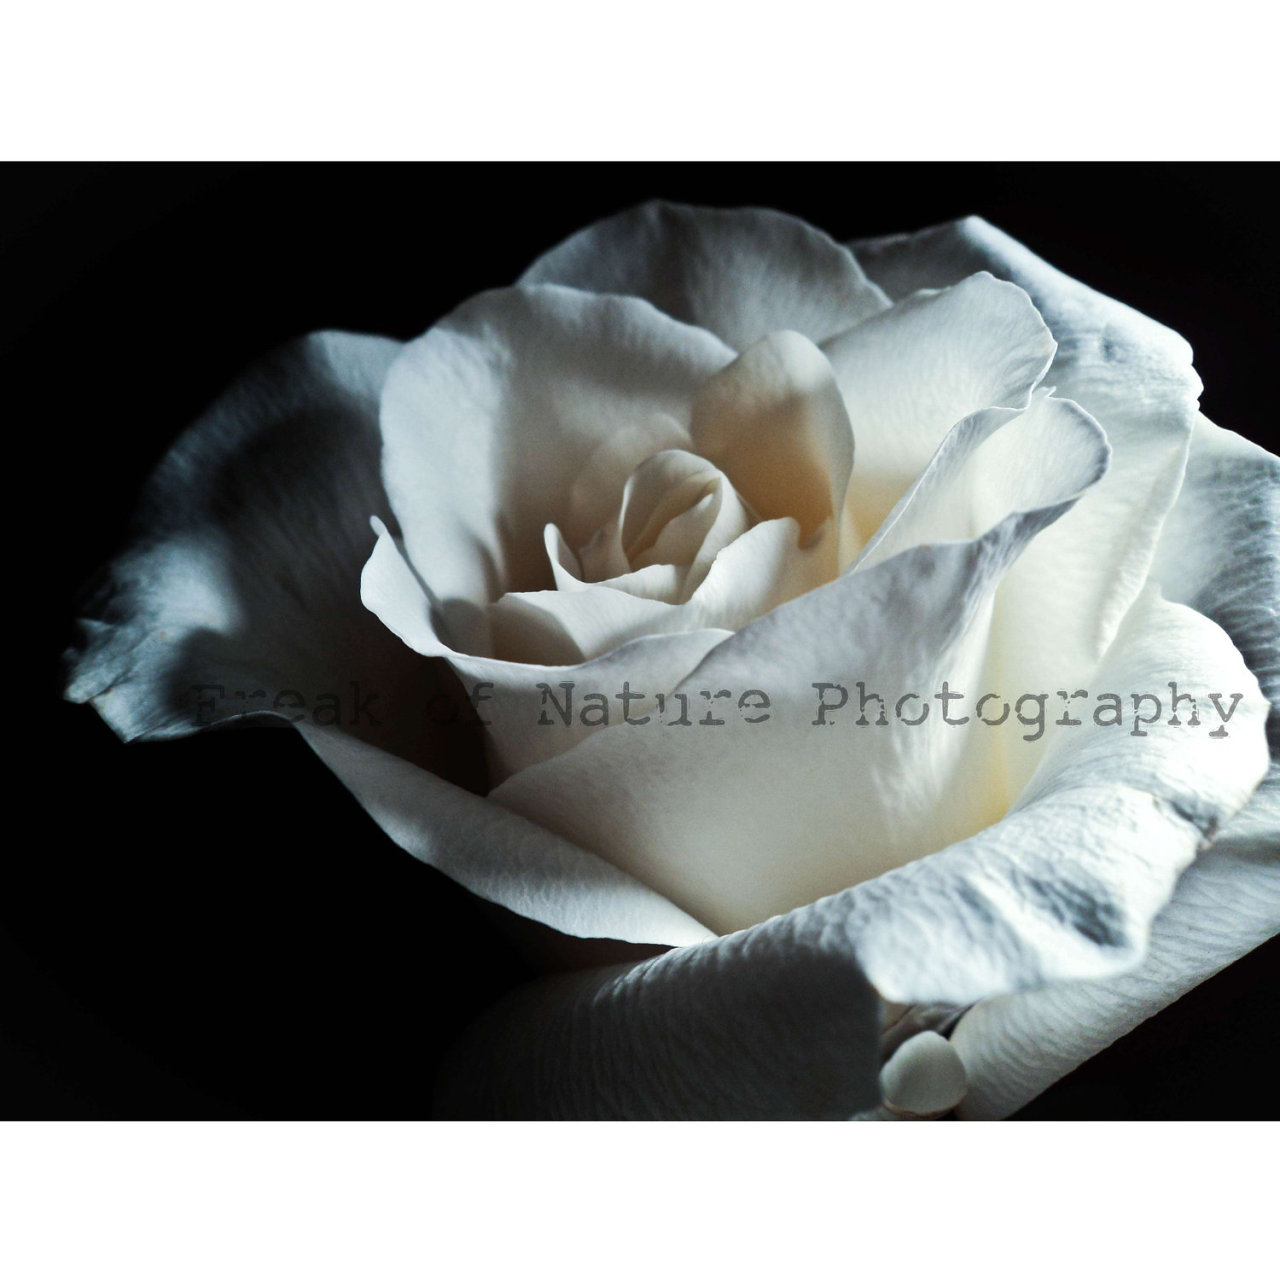 Fine Art Photography White Rose Macro Minimalist Black and White Monochrome - 5.5in x 8.5in by FreakofNaturePhotos (2.00 GBP) Art Print, freakofnaturephotos, Photograph, Photography, Rose, Flower, White Rose, White Flower, White Photograph, Macro Photography, Rose Photo, Black and White, Minimalist